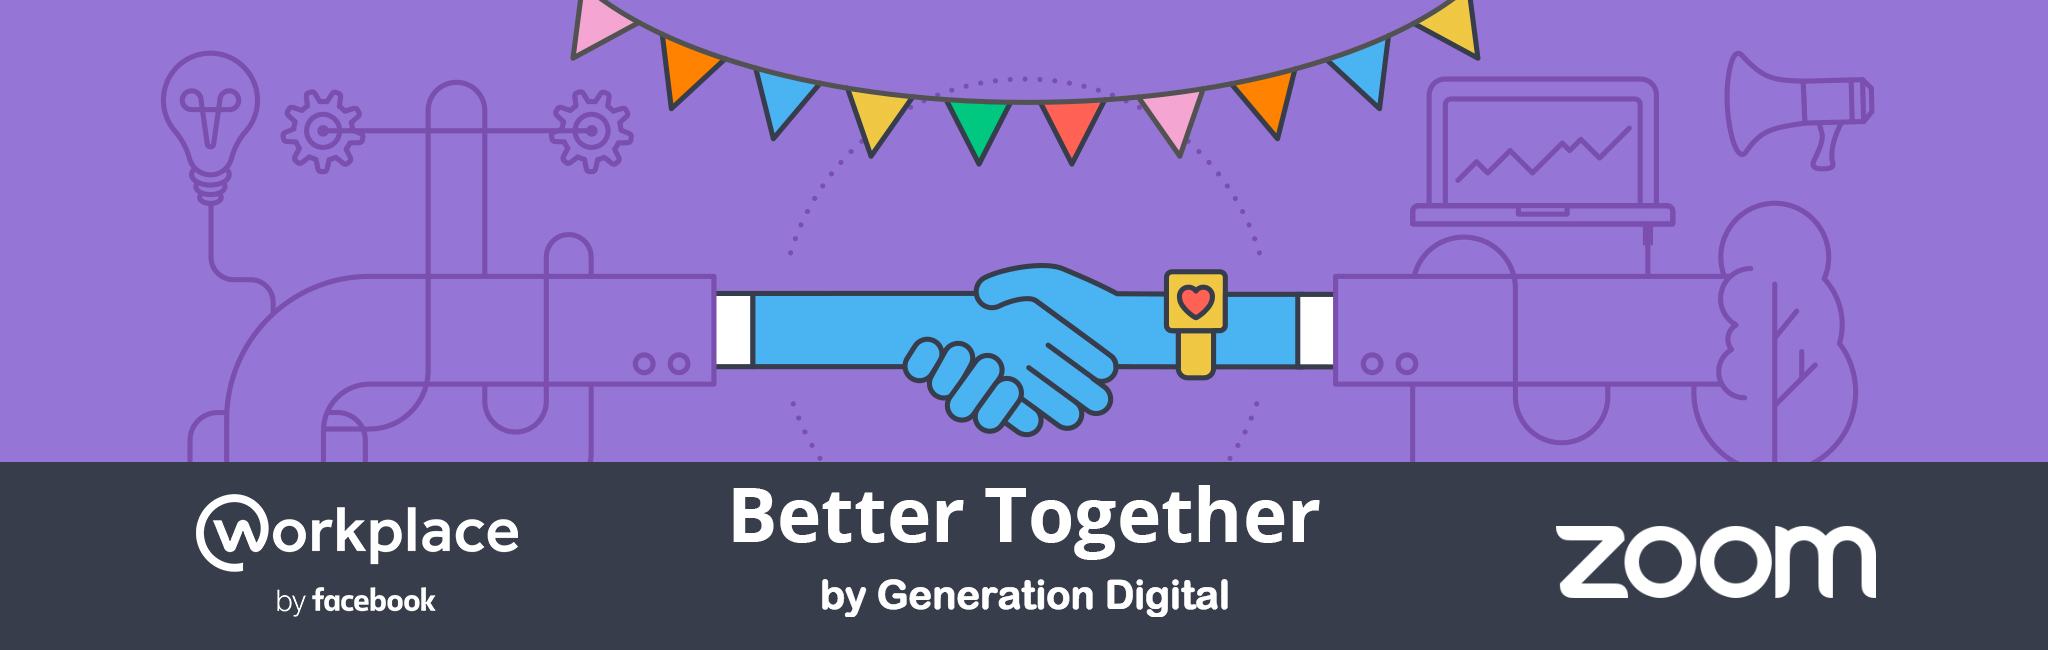 Better together  - Workplace by Facebook and Zoom